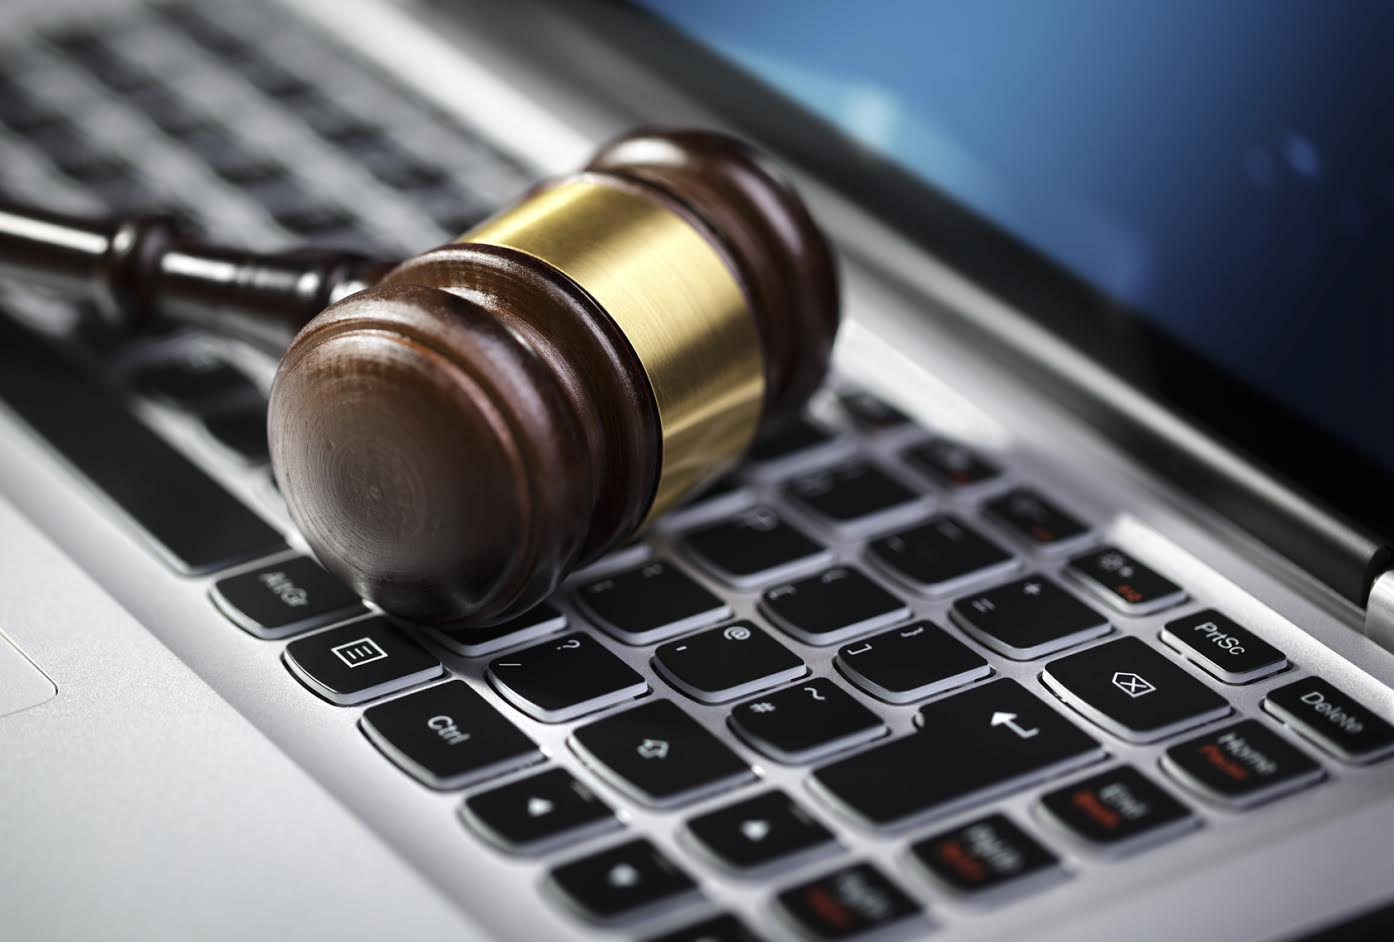 Computers may soon hand out convictions to petty criminals in the UK